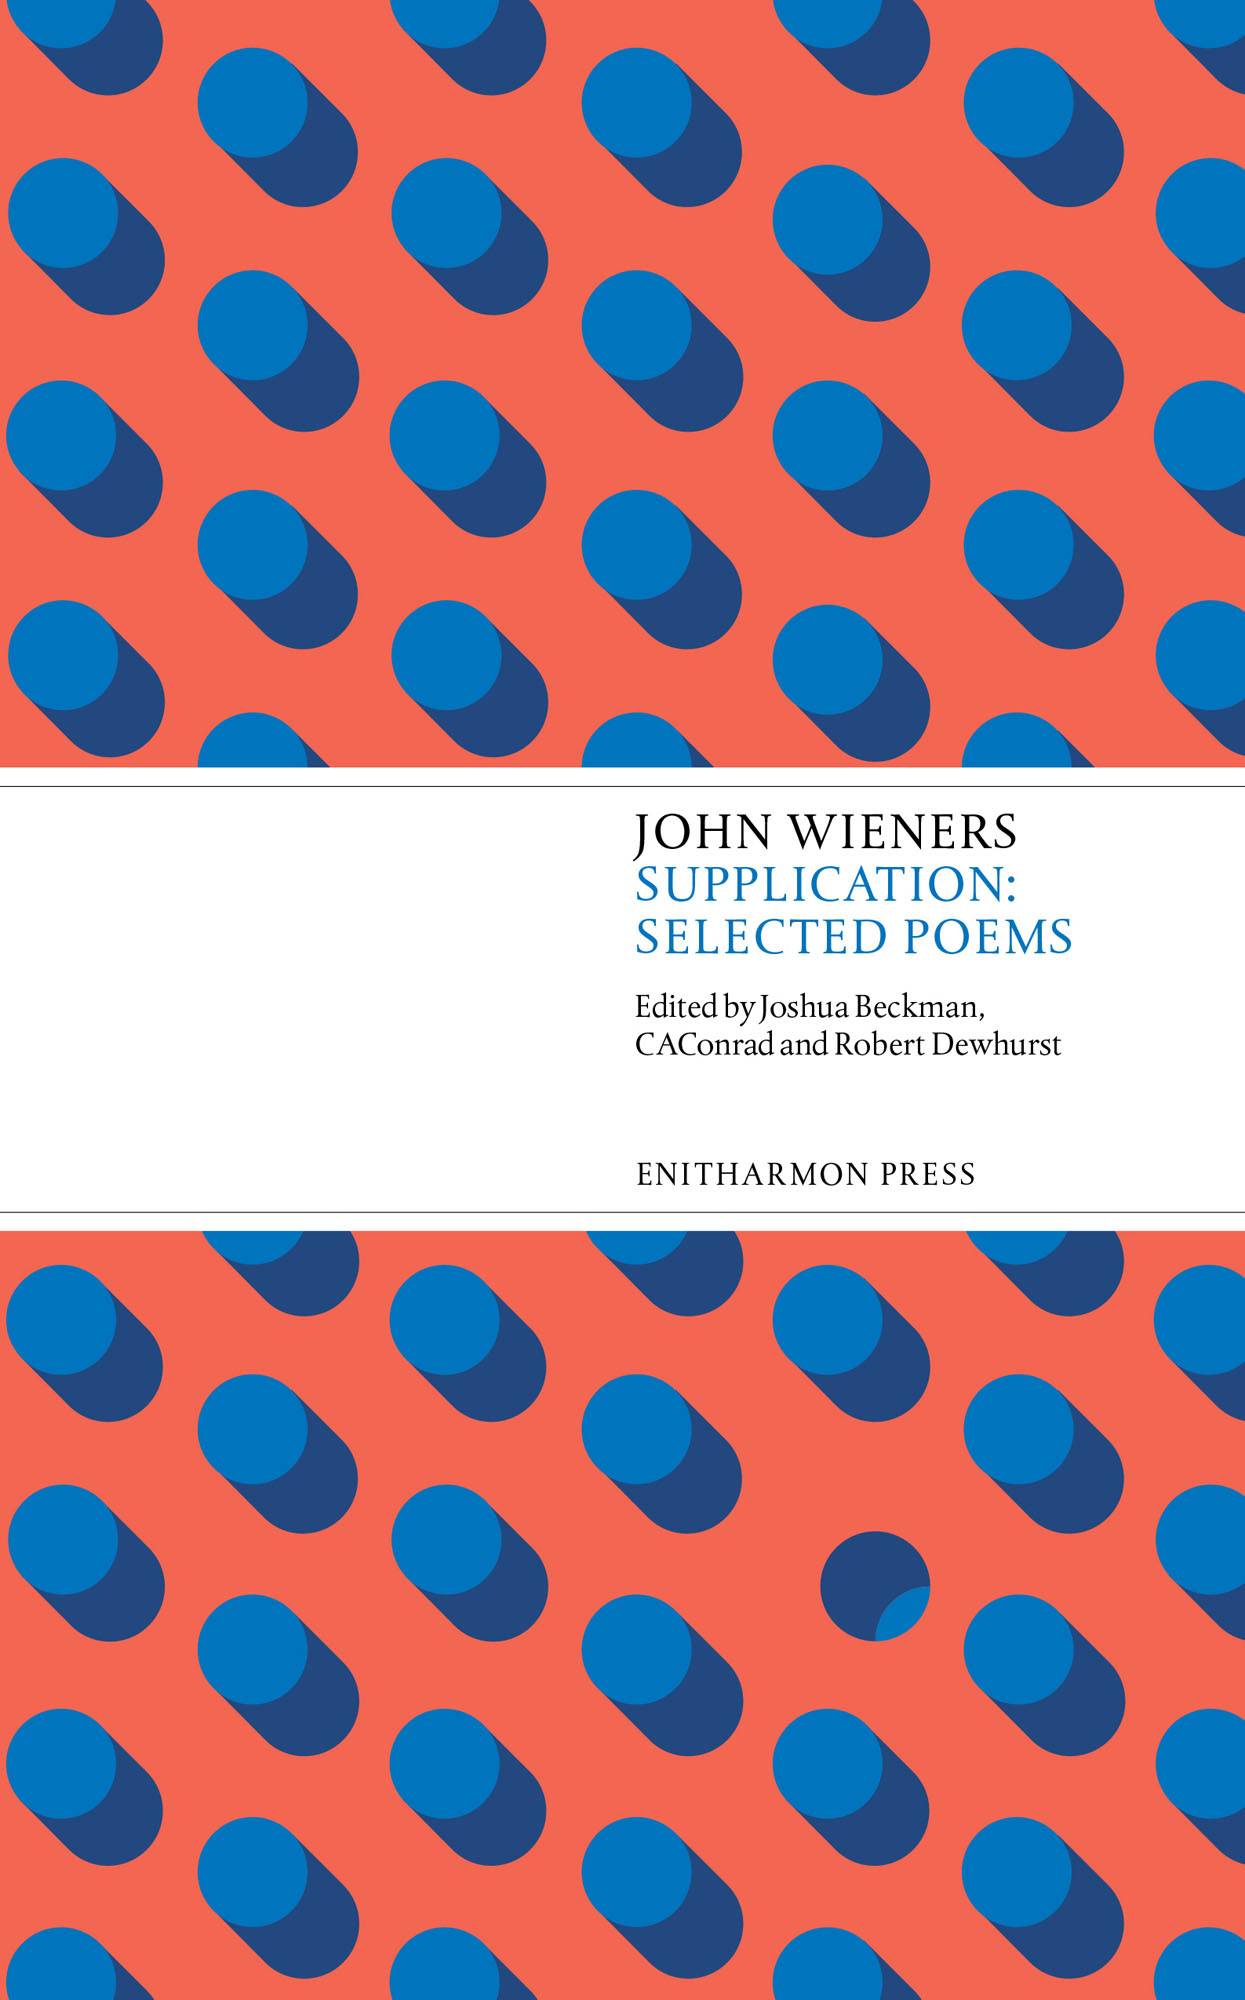 Supplication: Selected Poems